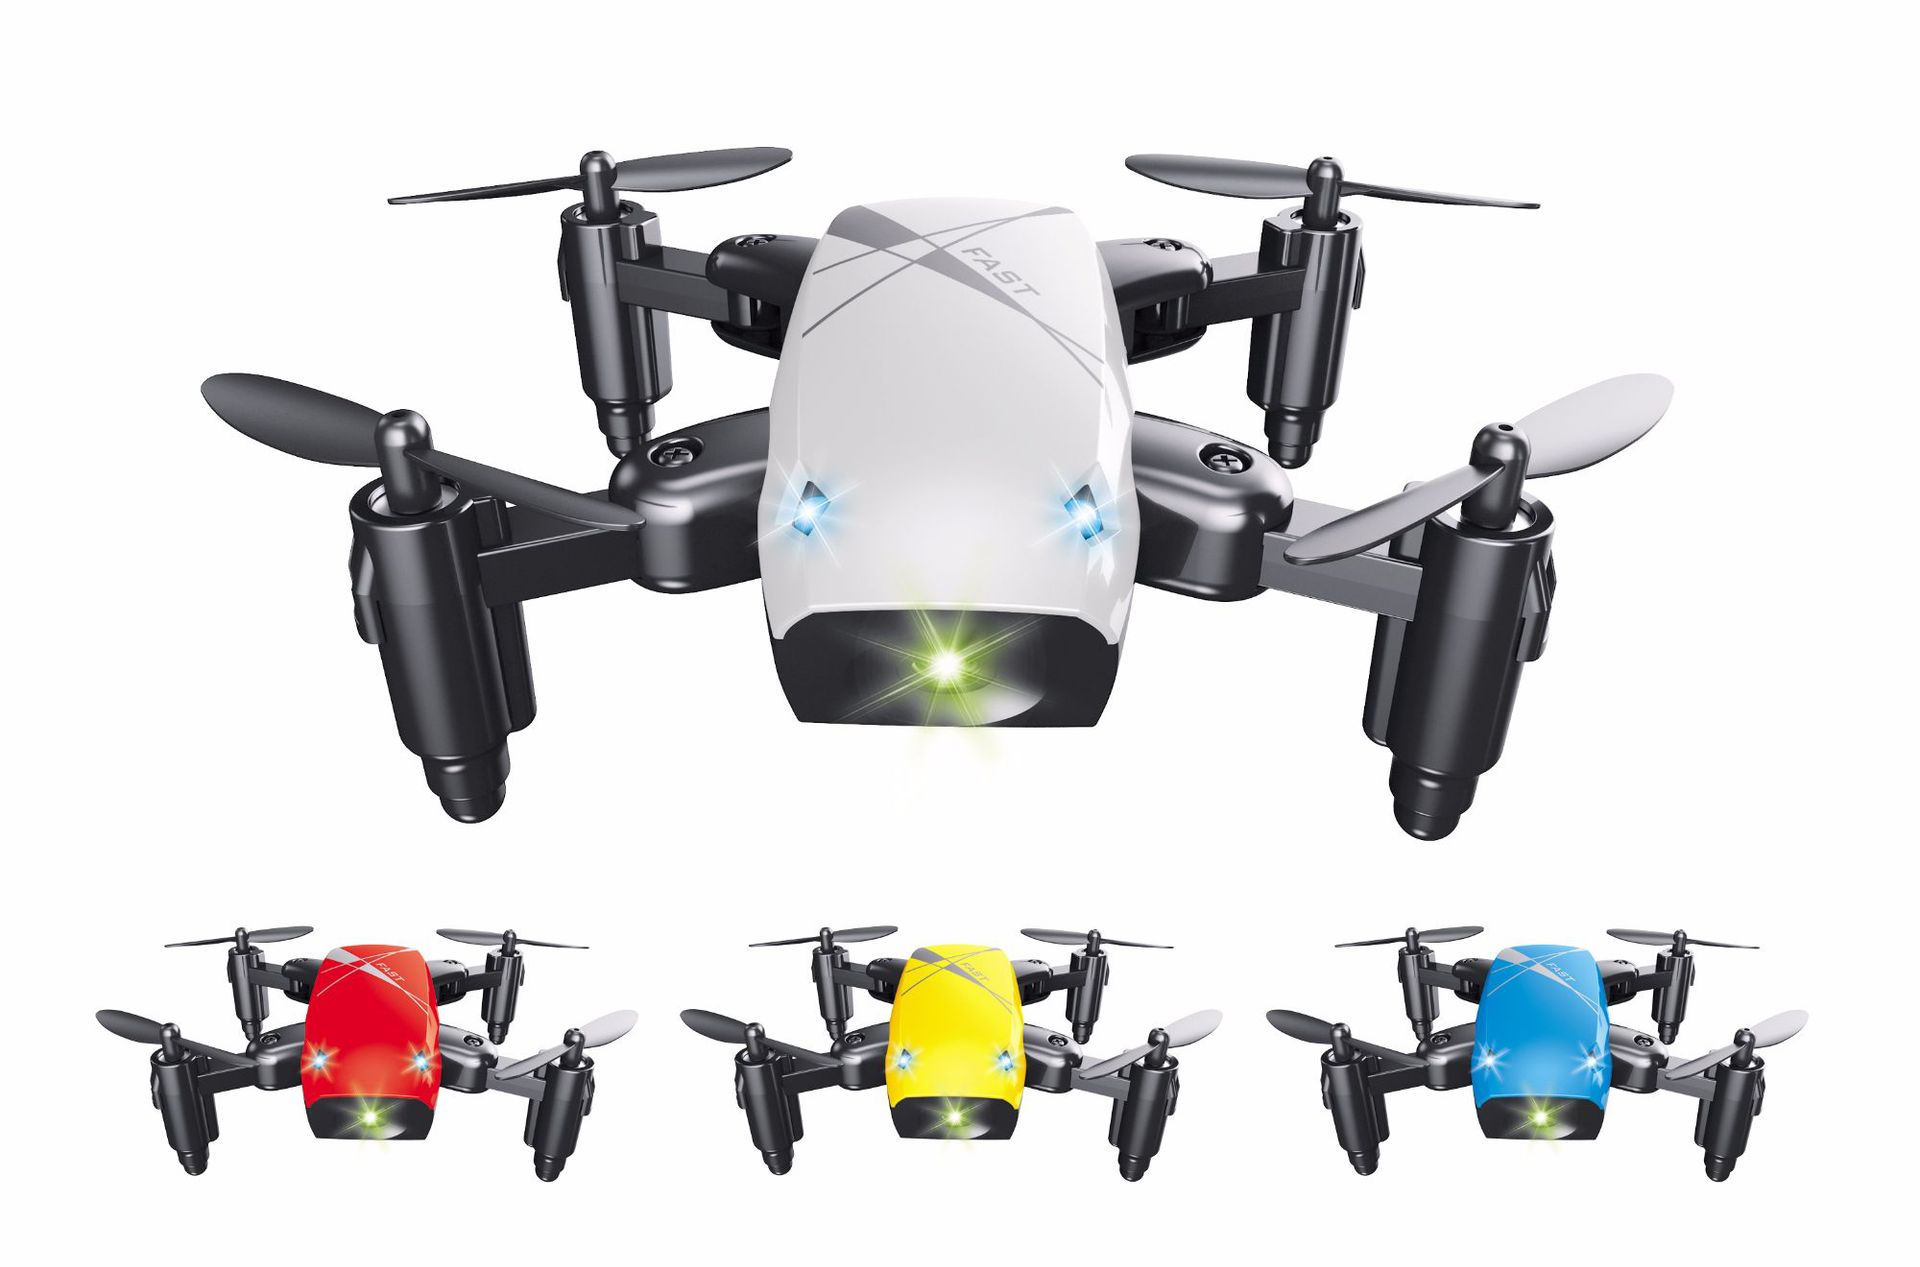 S9 Folding Mini Four-axis Aircraft Trill Wifi Aerial Photography Unmanned Aerial Vehicle Remote Control Airplane Children's Toy